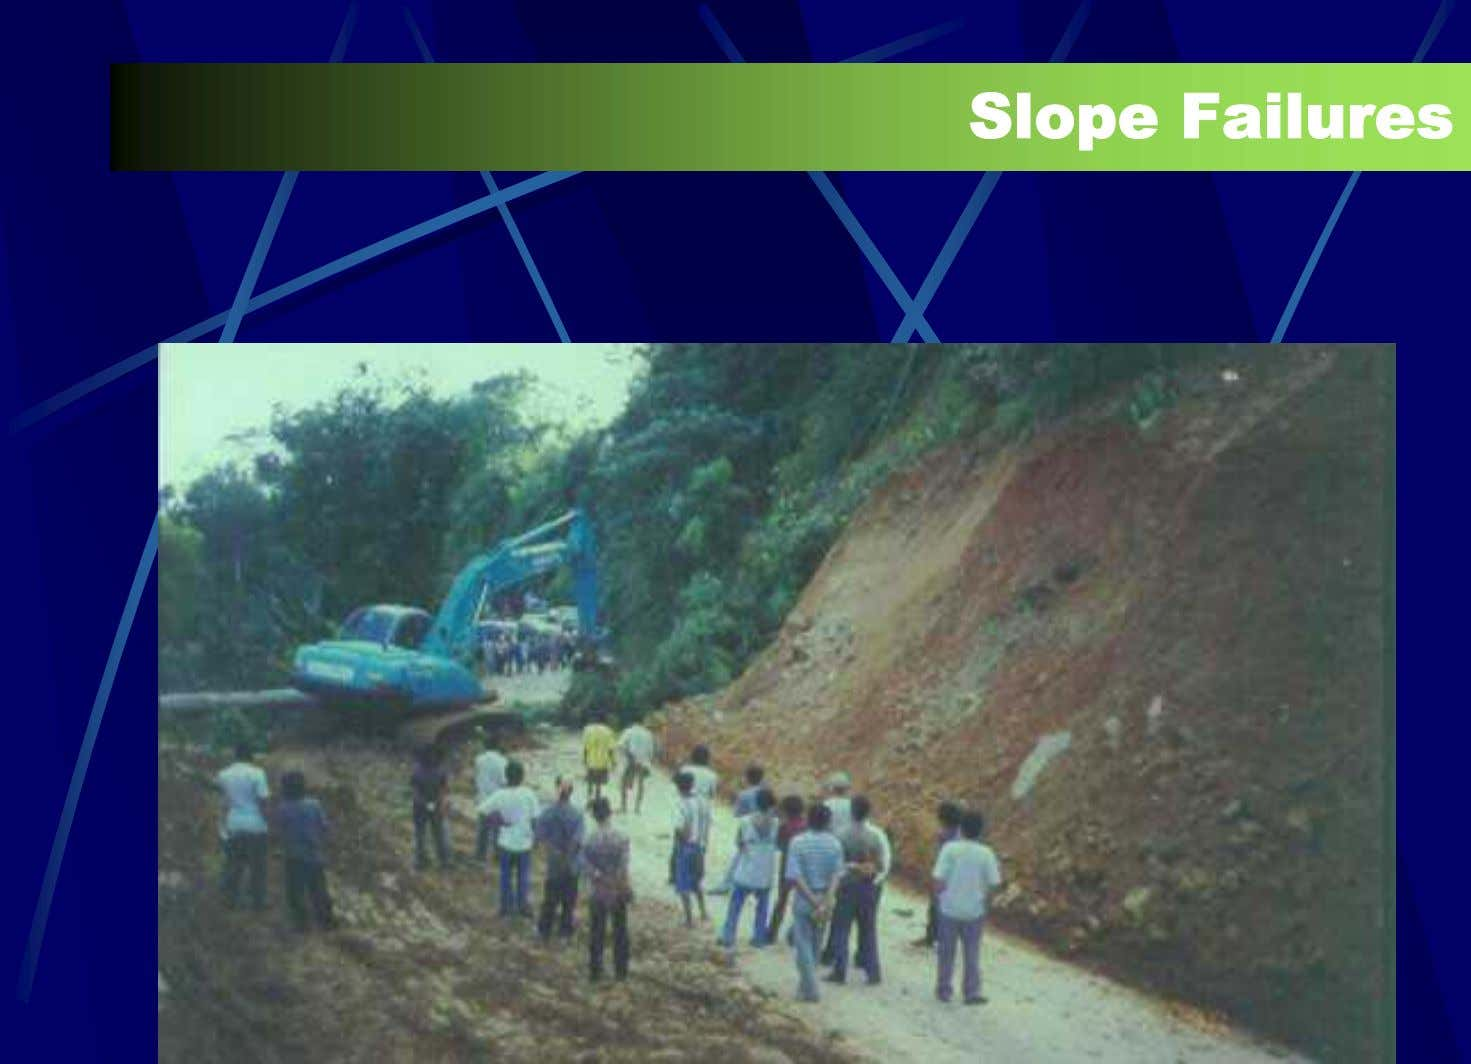 Slope Failures